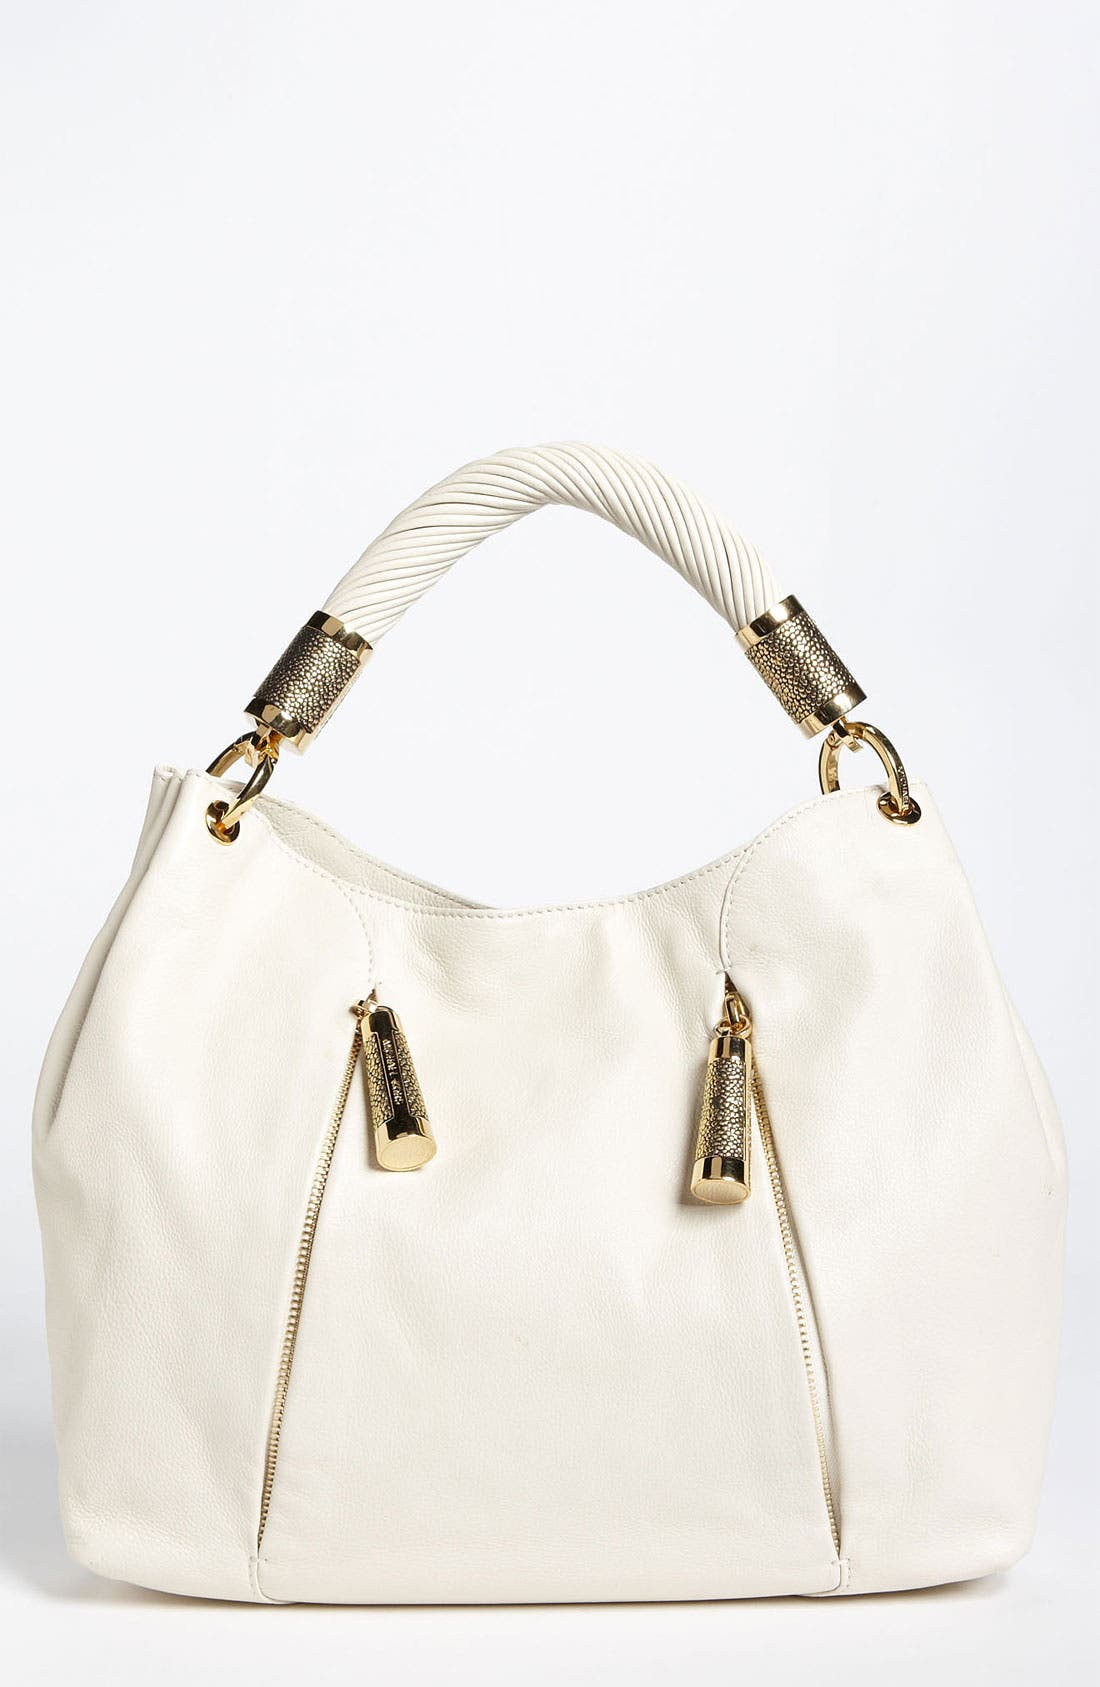 Main Image - Michael Kors 'Tonne' Leather Hobo